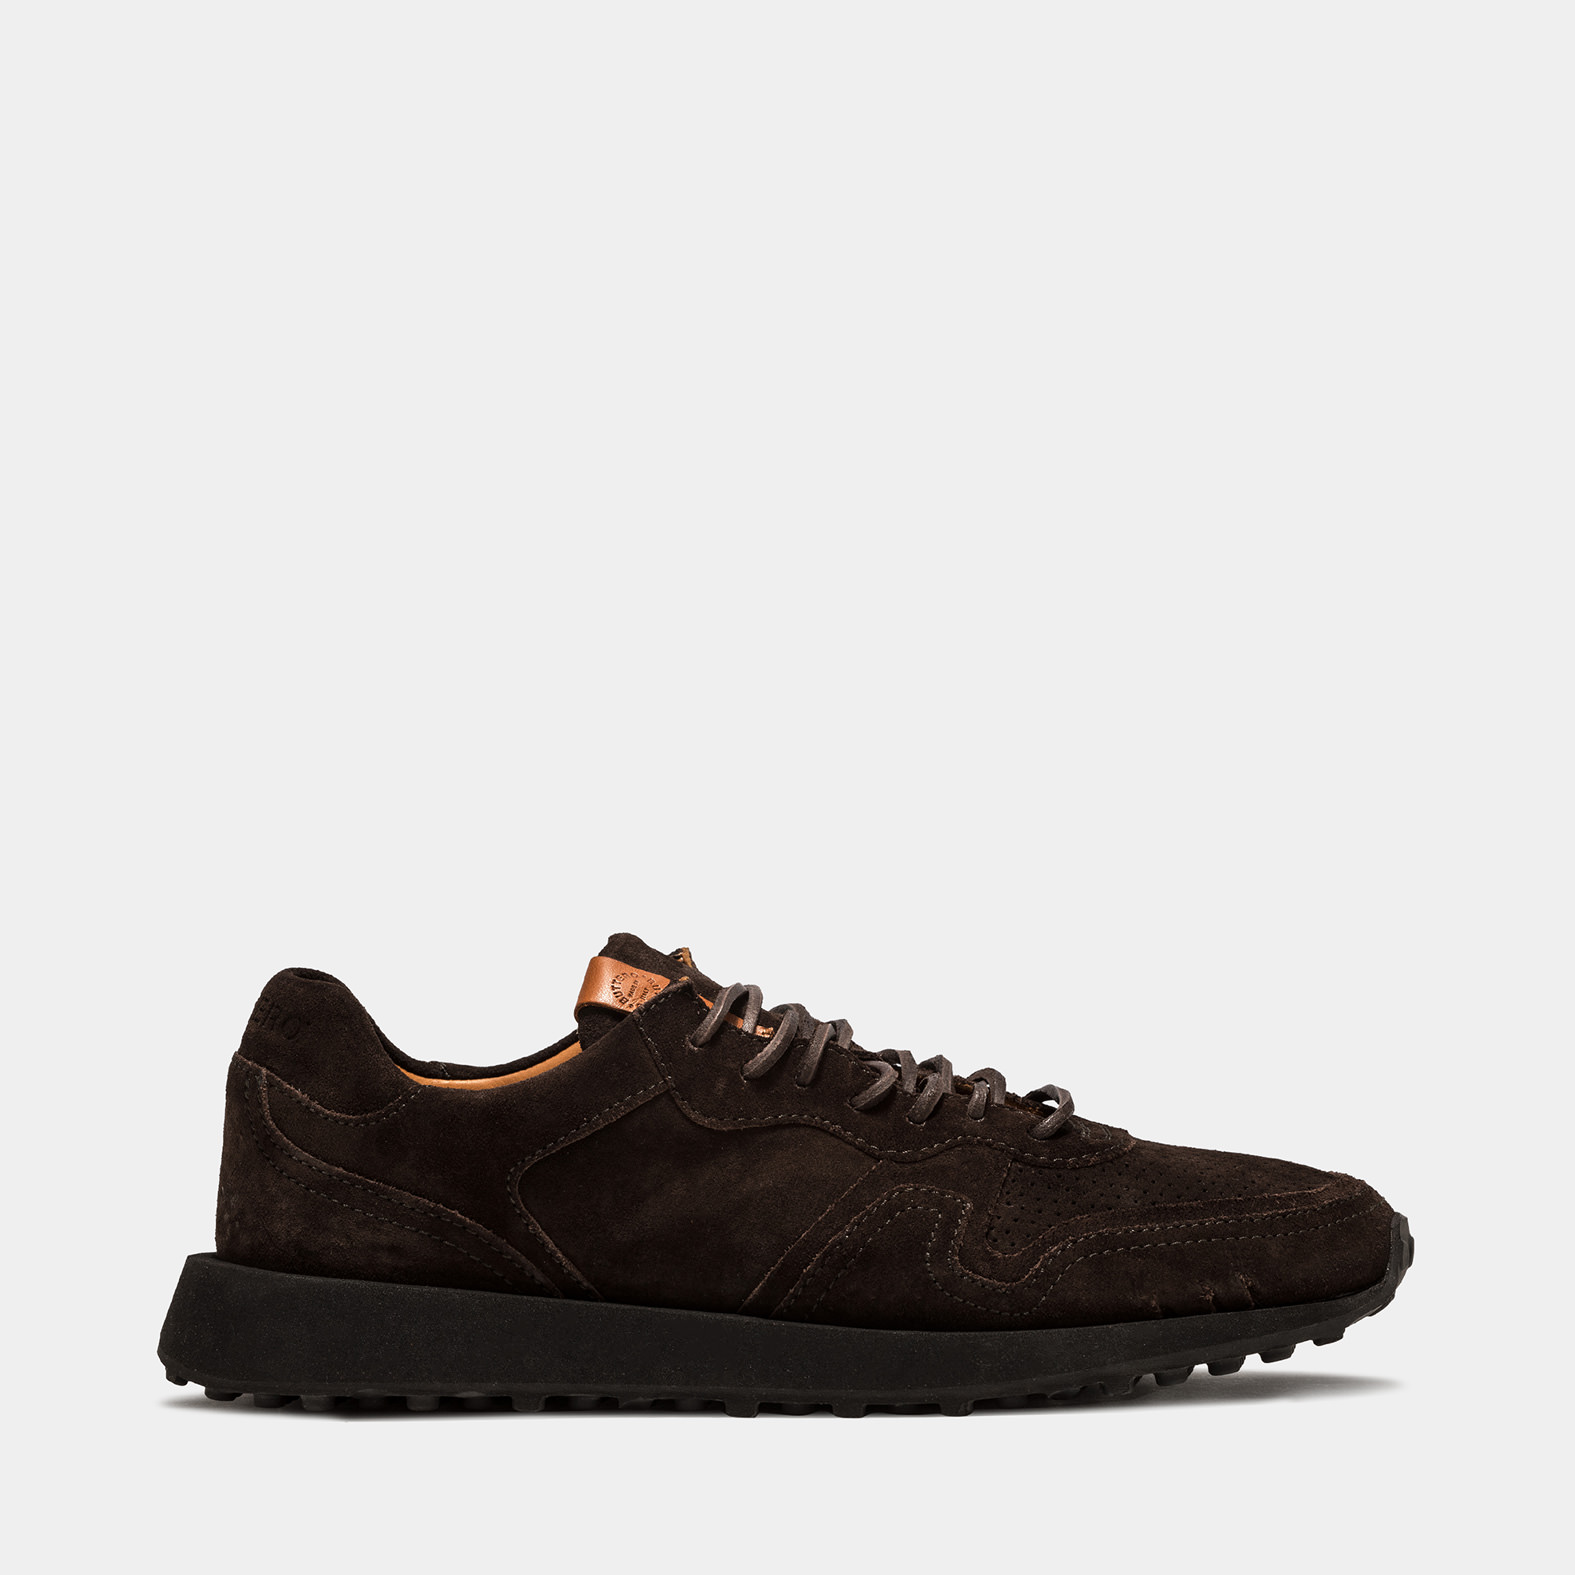 BUTTERO: FUTURA SNEAKERS IN PEPPER BROWN SUEDE